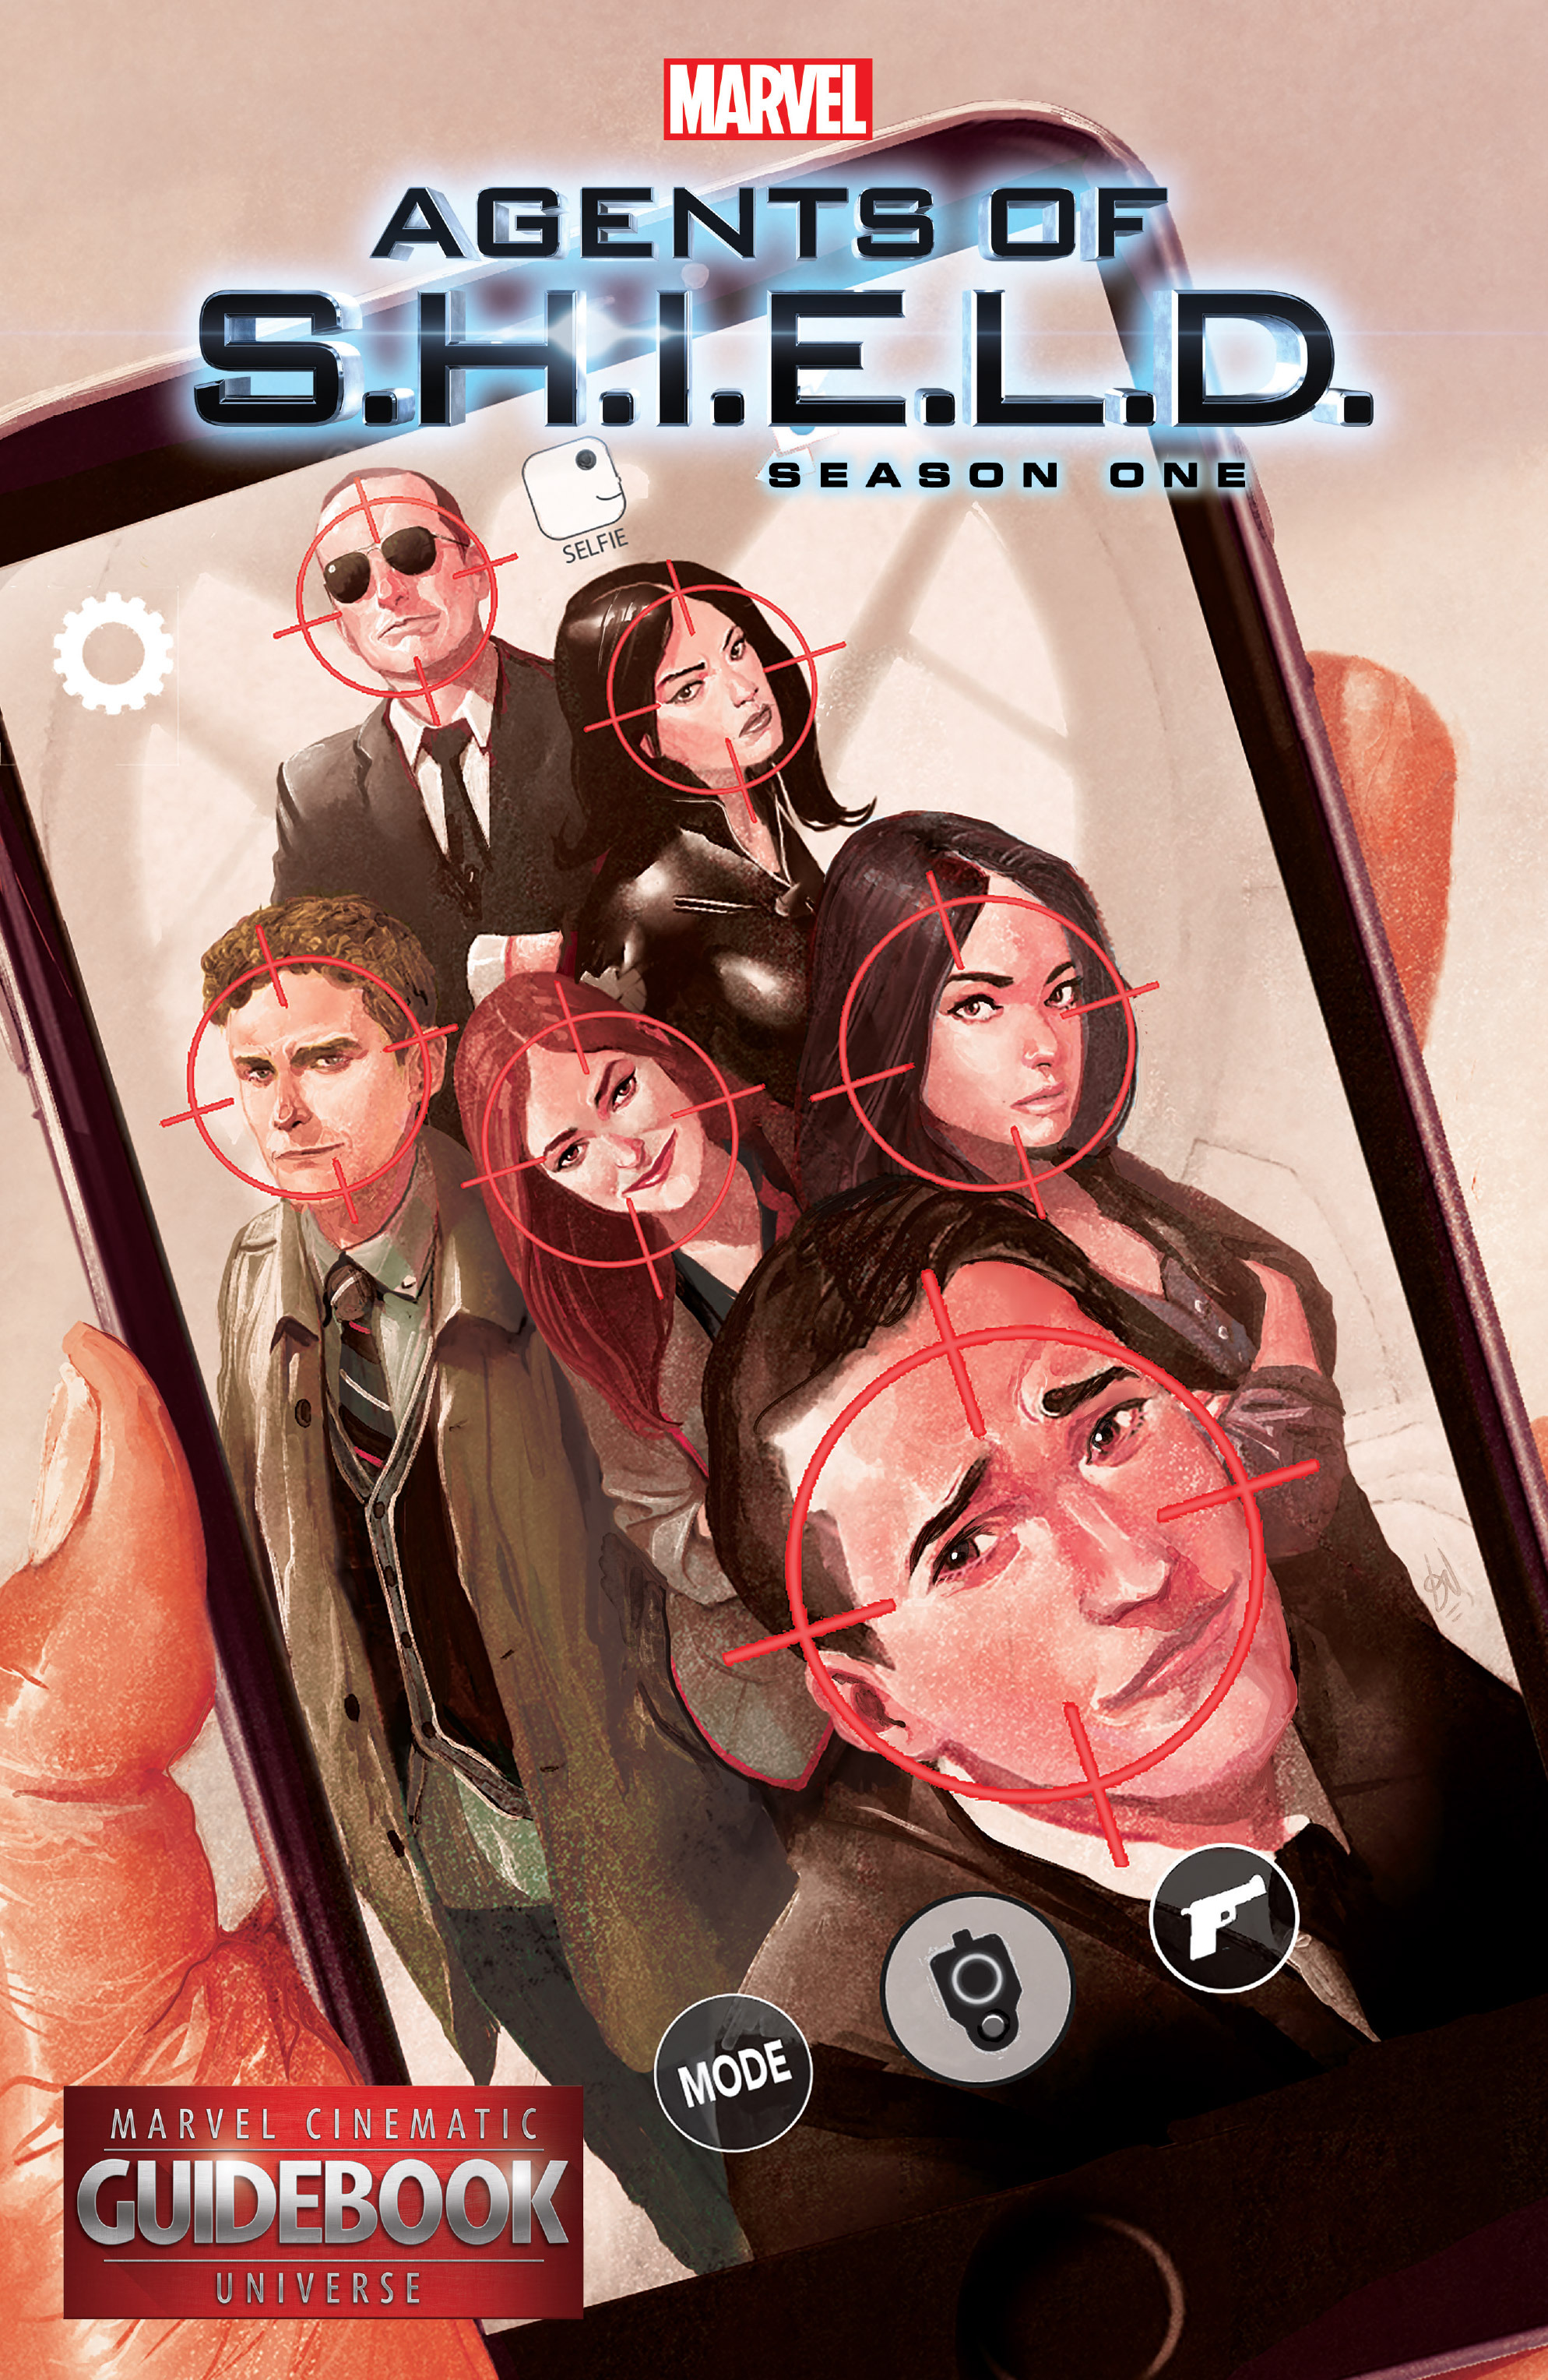 Read online Guidebook to the Marvel Cinematic Universe - Marvel's Agents of S.H.I.E.L.D. Season One comic -  Issue # Full - 1